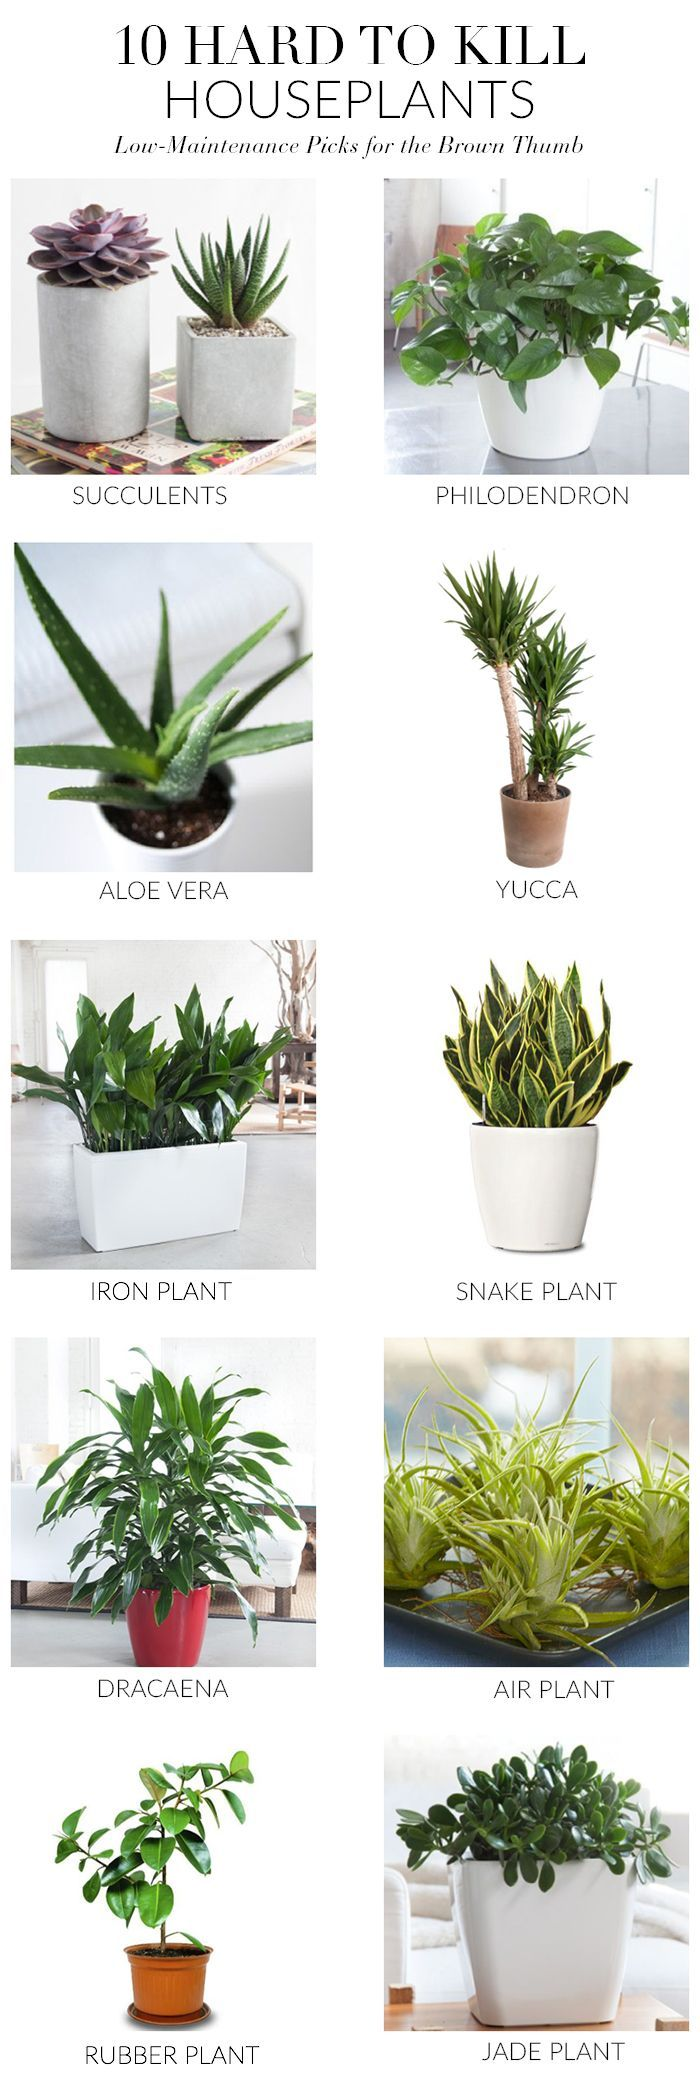 Jade Plants Need Full Sun In Order To Grow Properly And